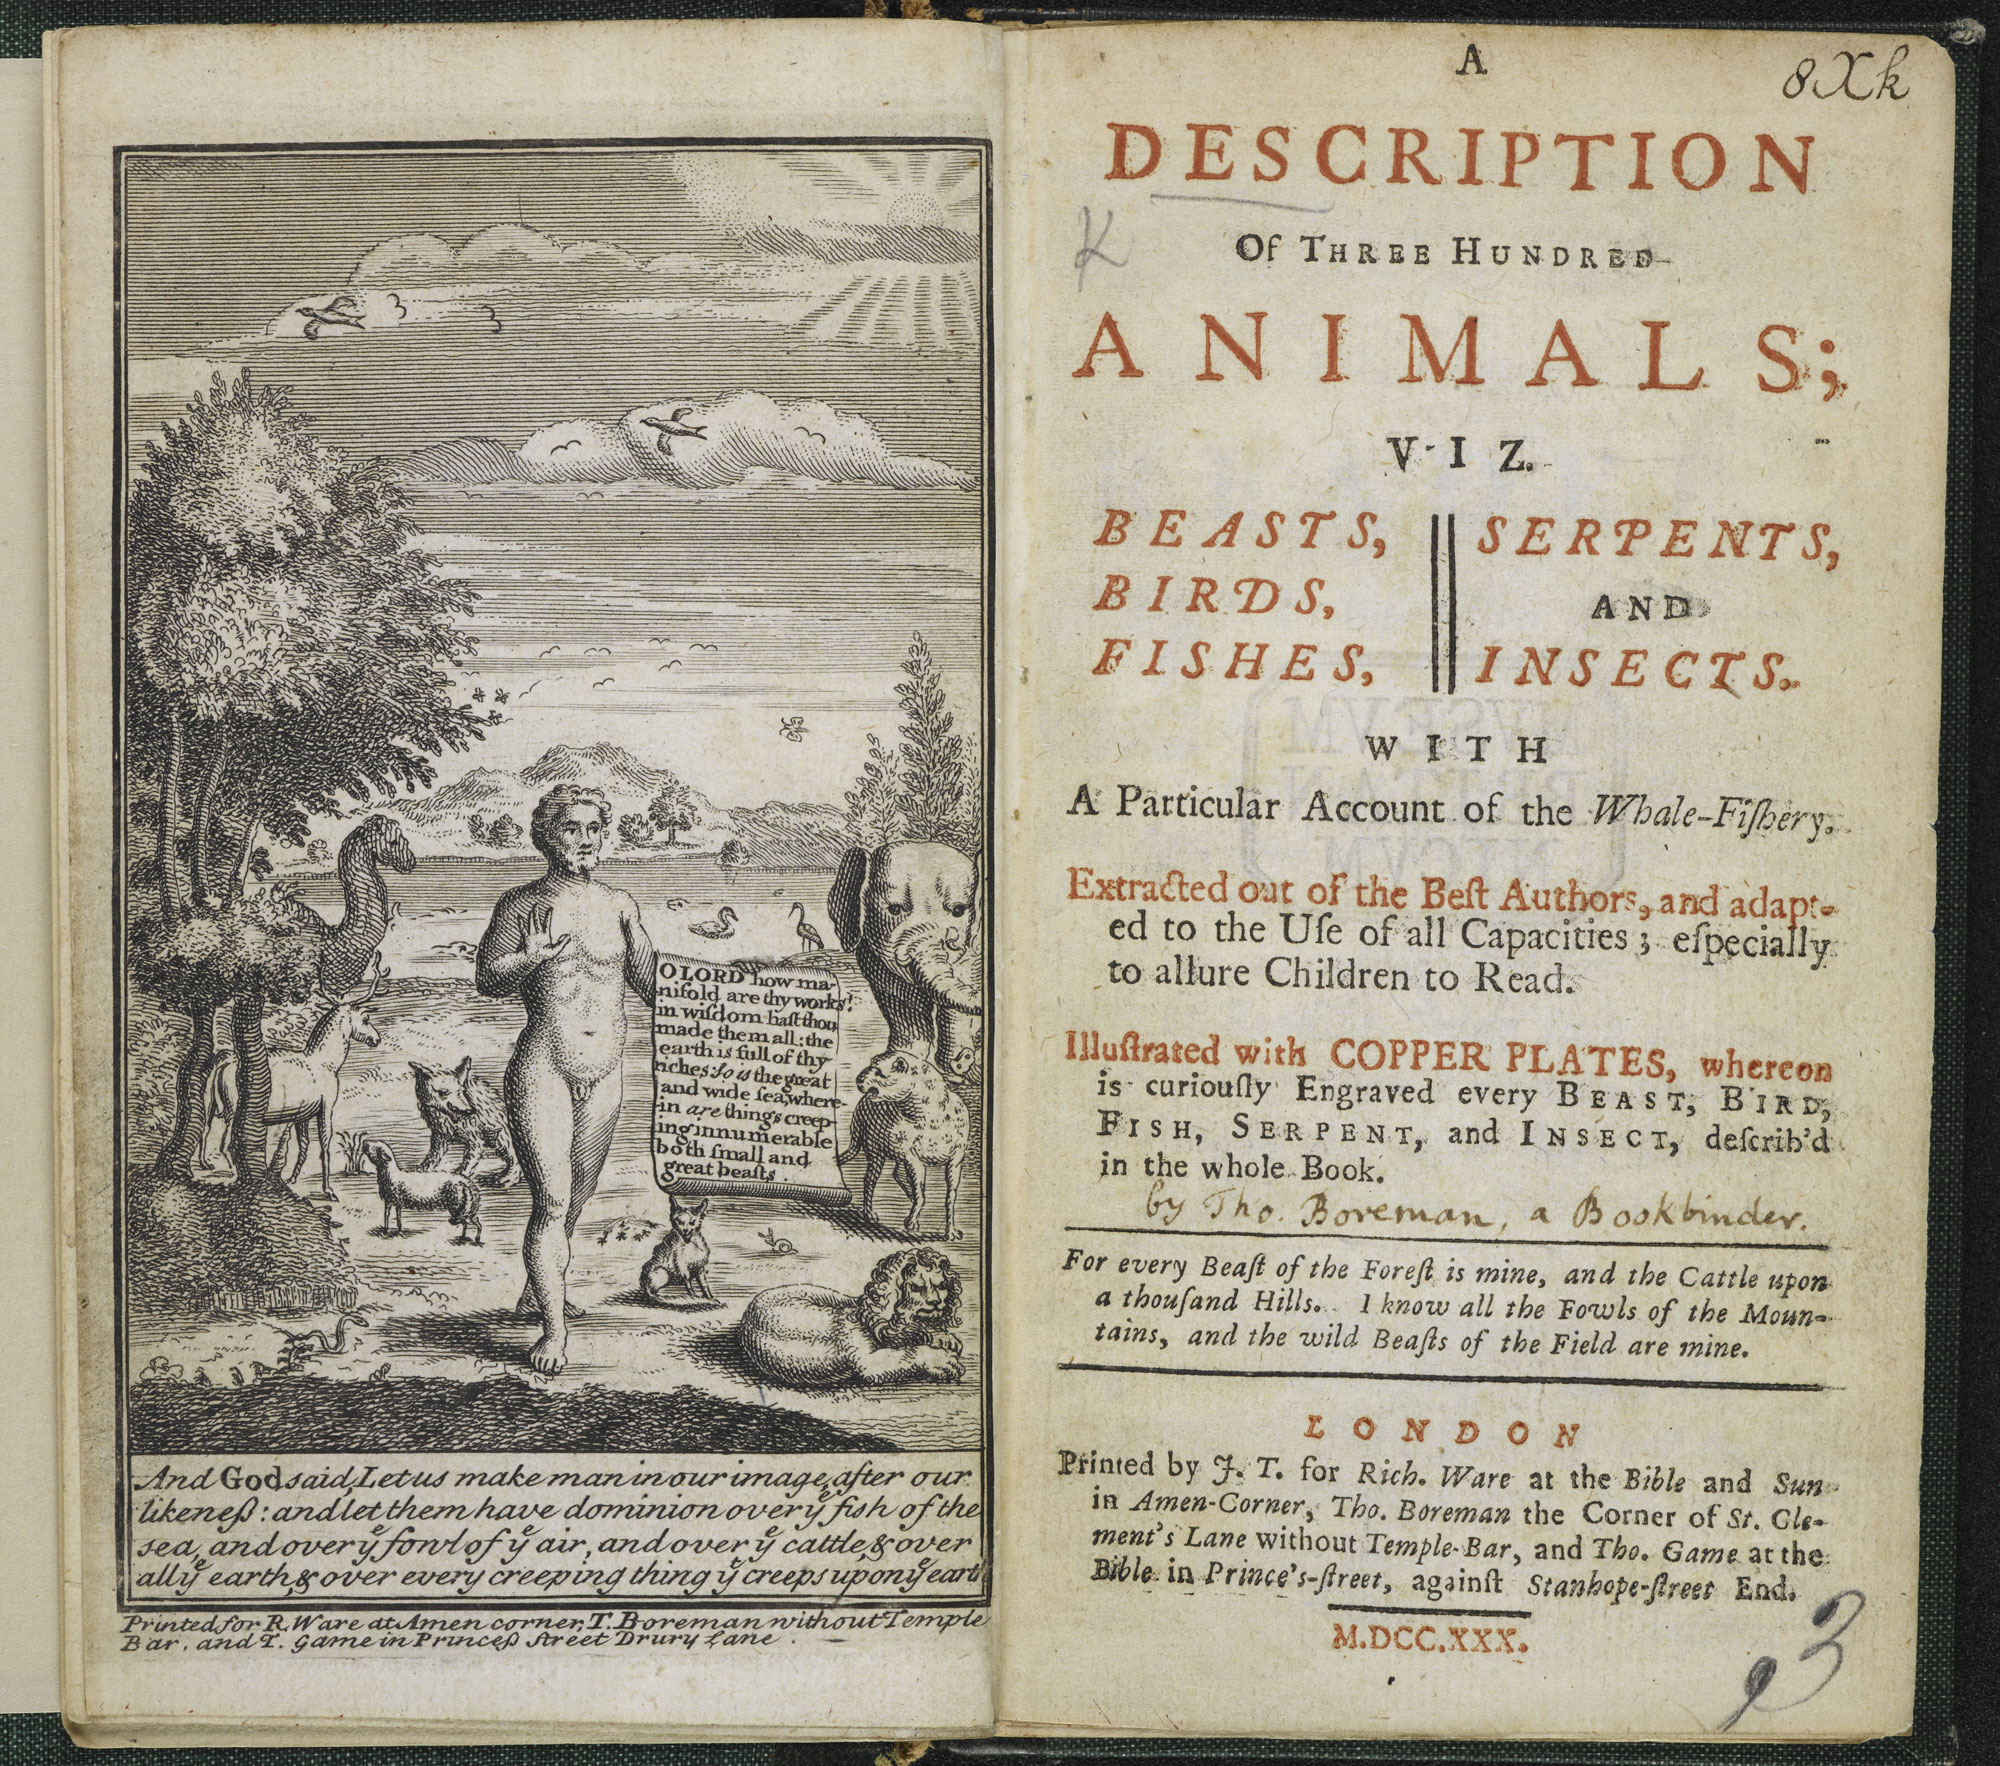 A Description of Three Hundred Animals [page: frontispiece and title page]